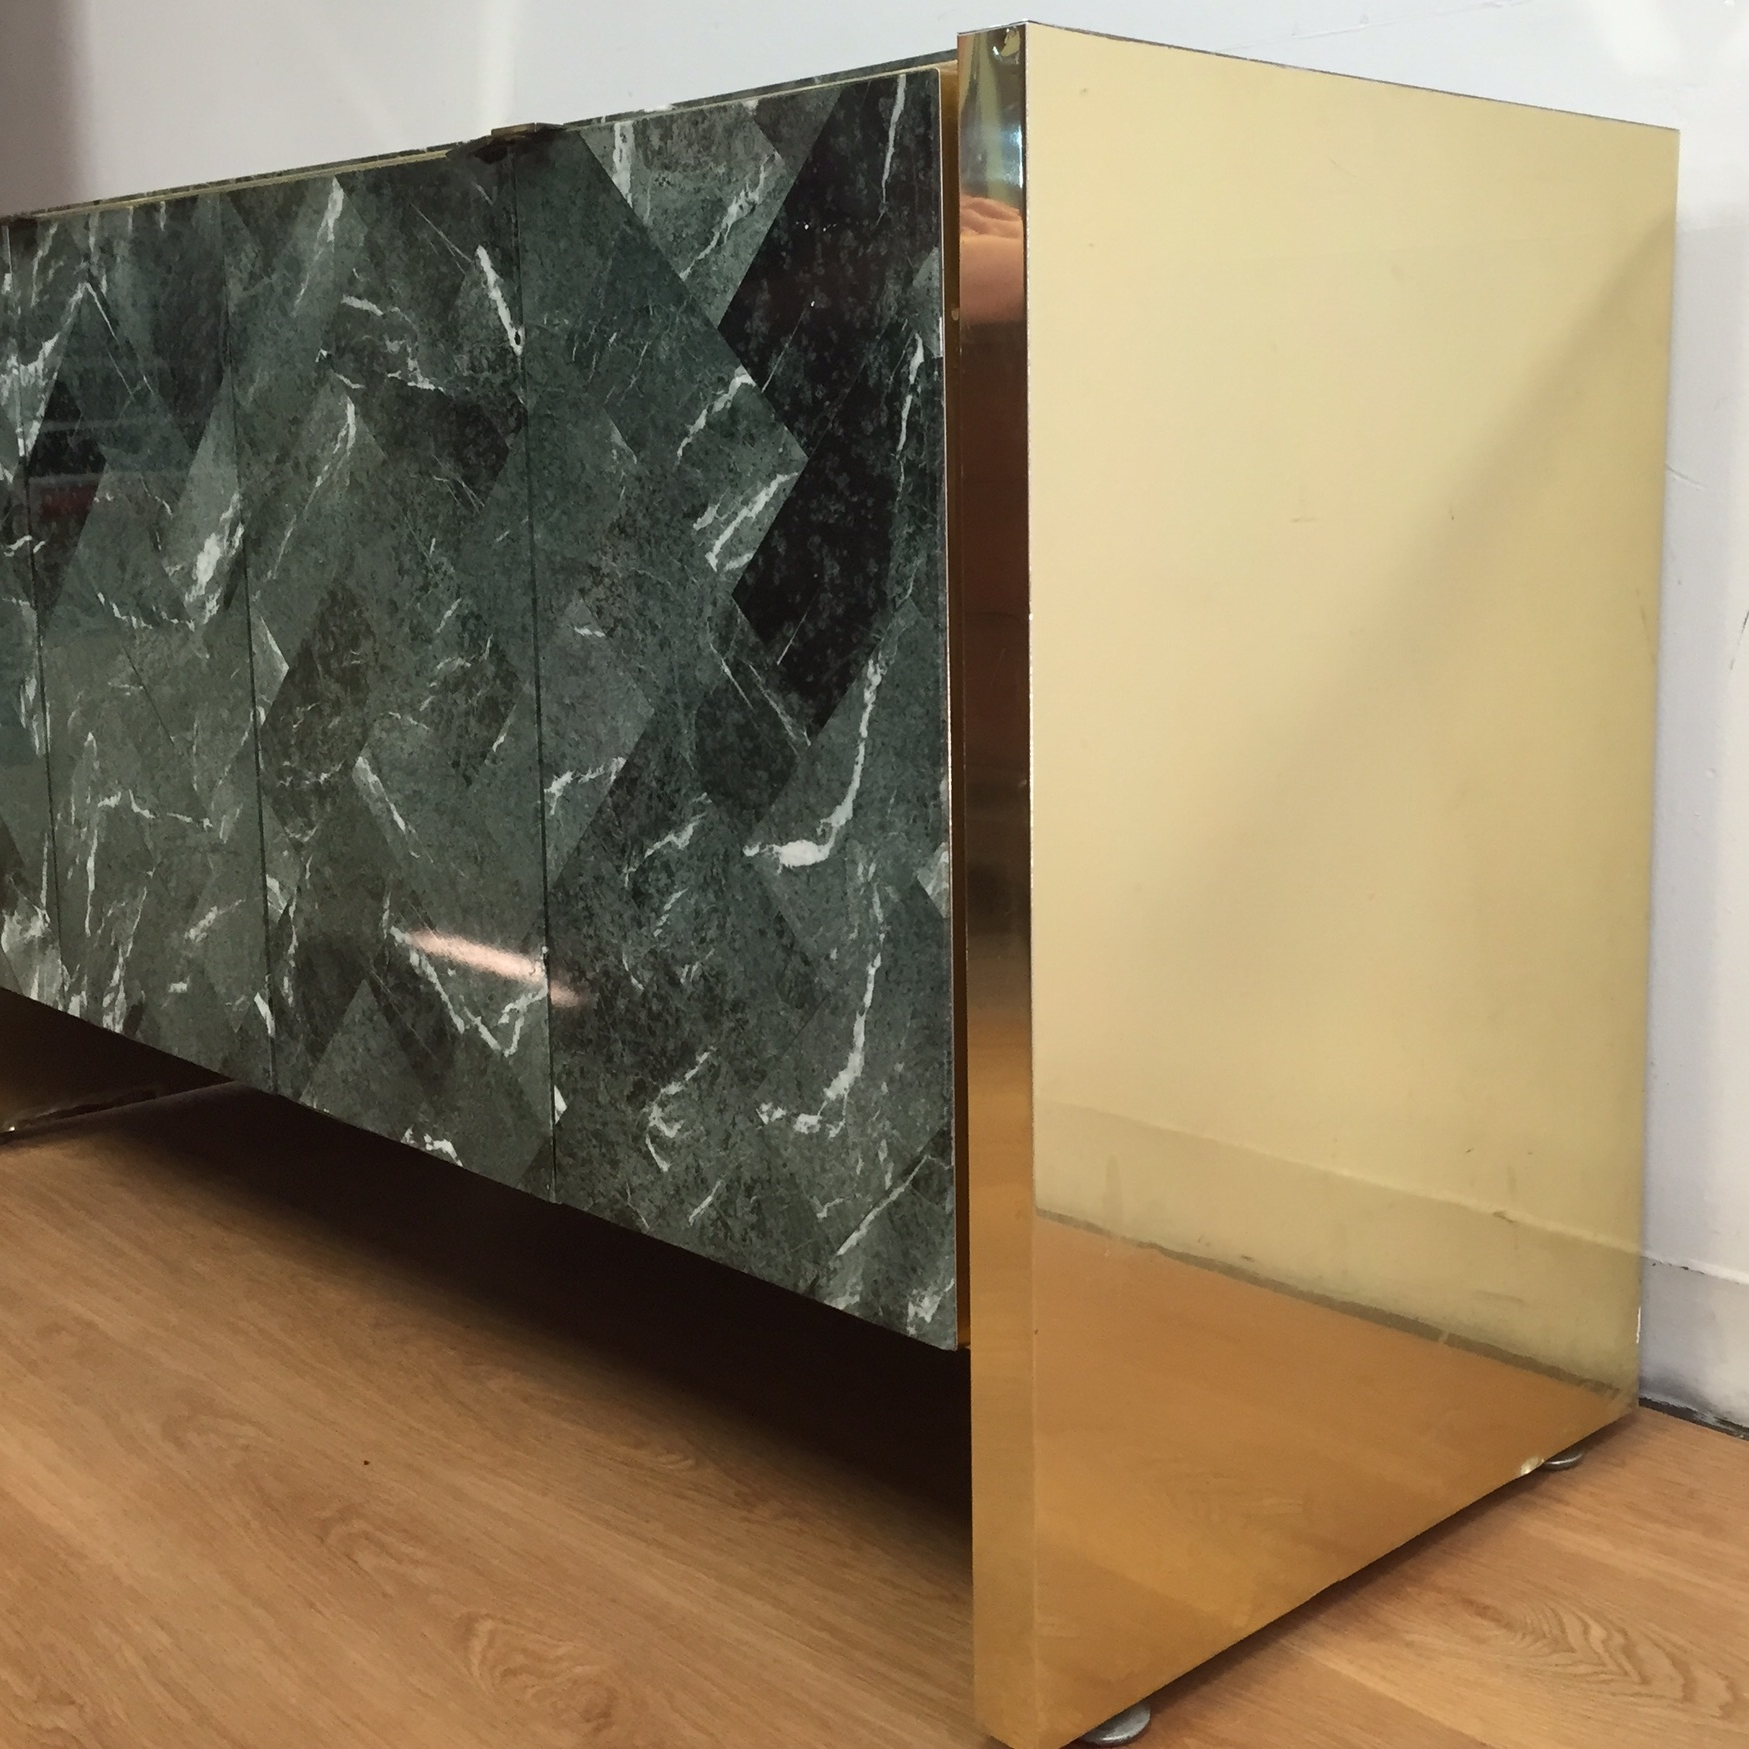 Tessellated Marble Amp Brass Credenza By Ello Chairish